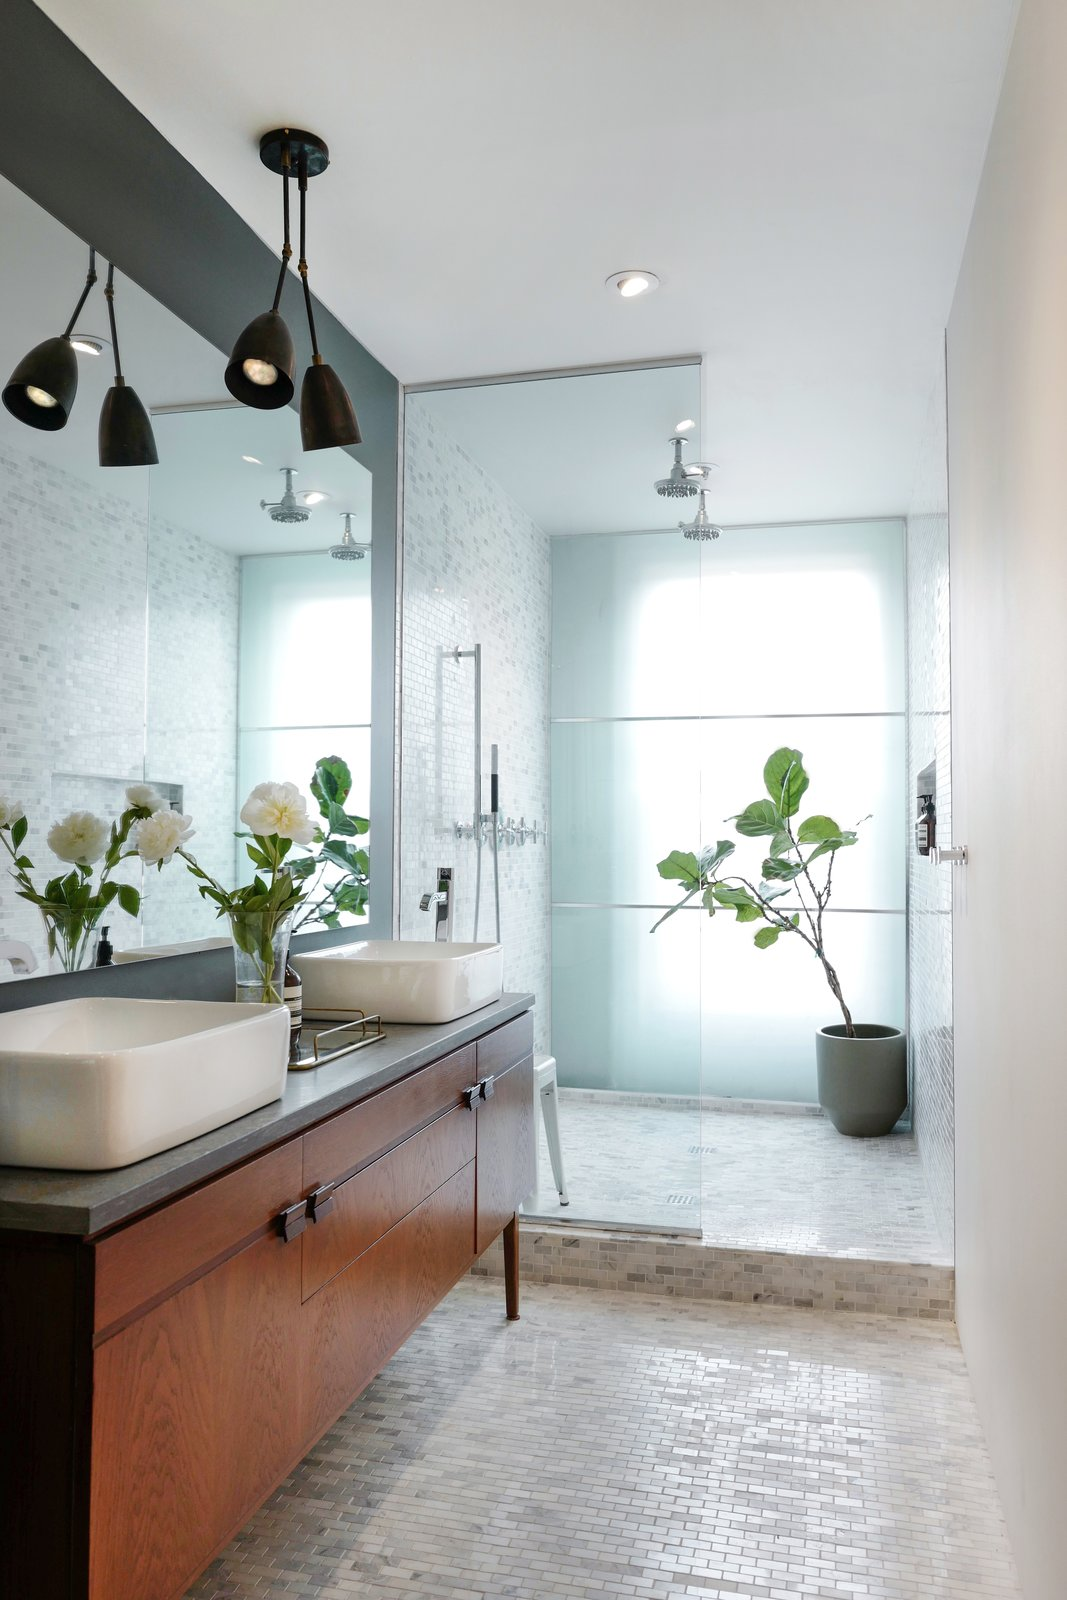 Bath Room, Vessel Sink, Open Shower, Ceiling Lighting, and Recessed Lighting  Photo 11 of 16 in A Design Duo's 19th-Century Brooklyn Townhouse Is Filled With Art They Love